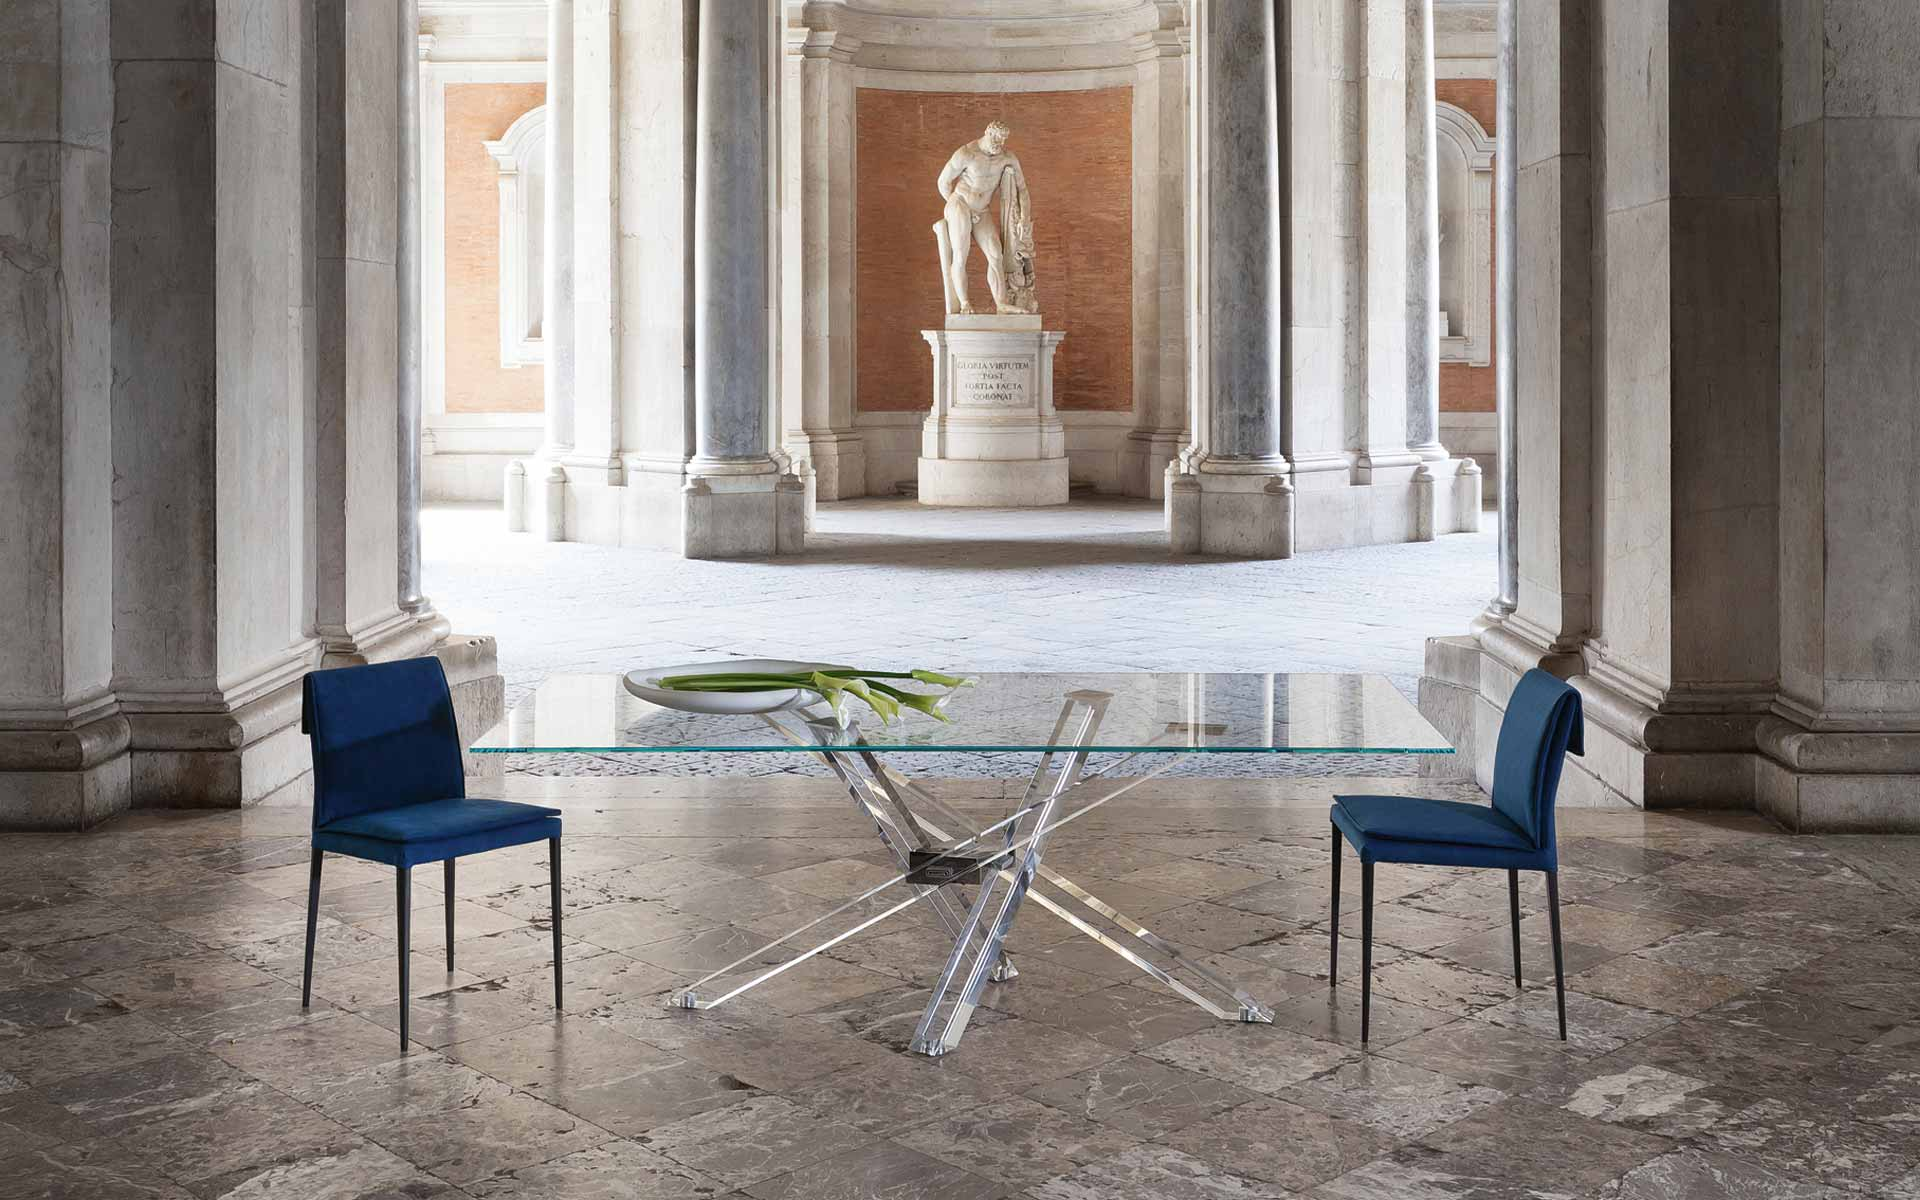 Limited Edition Italian Design dining table SHANGAI by Riflessi-shangai-metacrilato-02